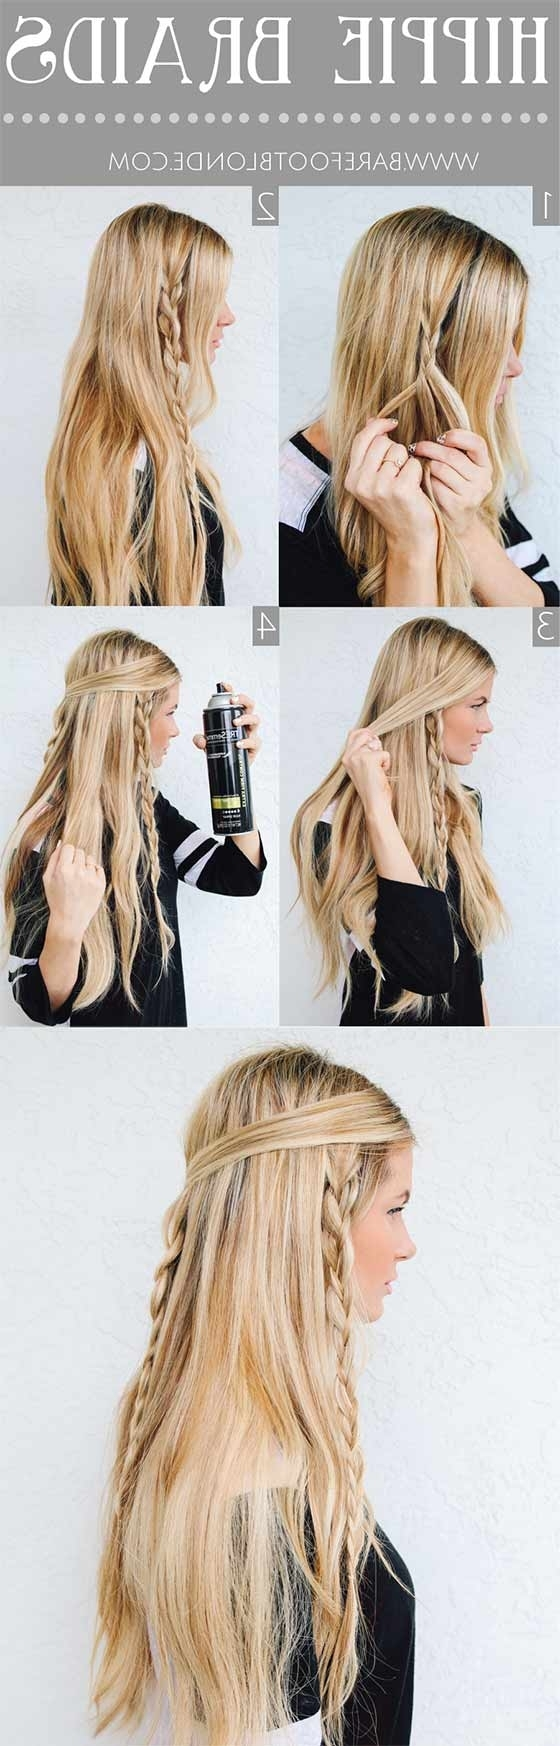 40 Braided Hairstyles For Long Hair Pertaining To Most Up To Date Triple Braid Hairstyles (View 11 of 15)